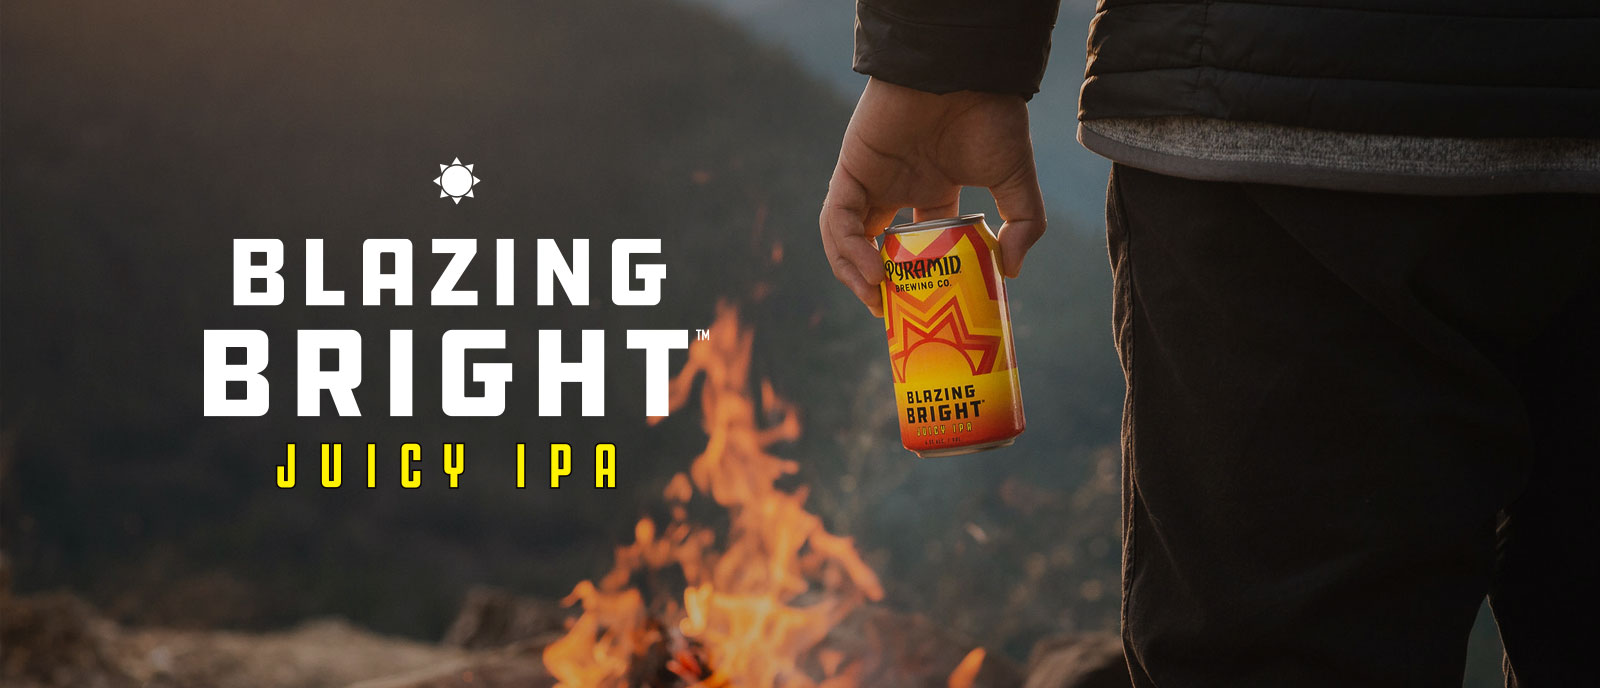 Blazing Bright Juicy IPA